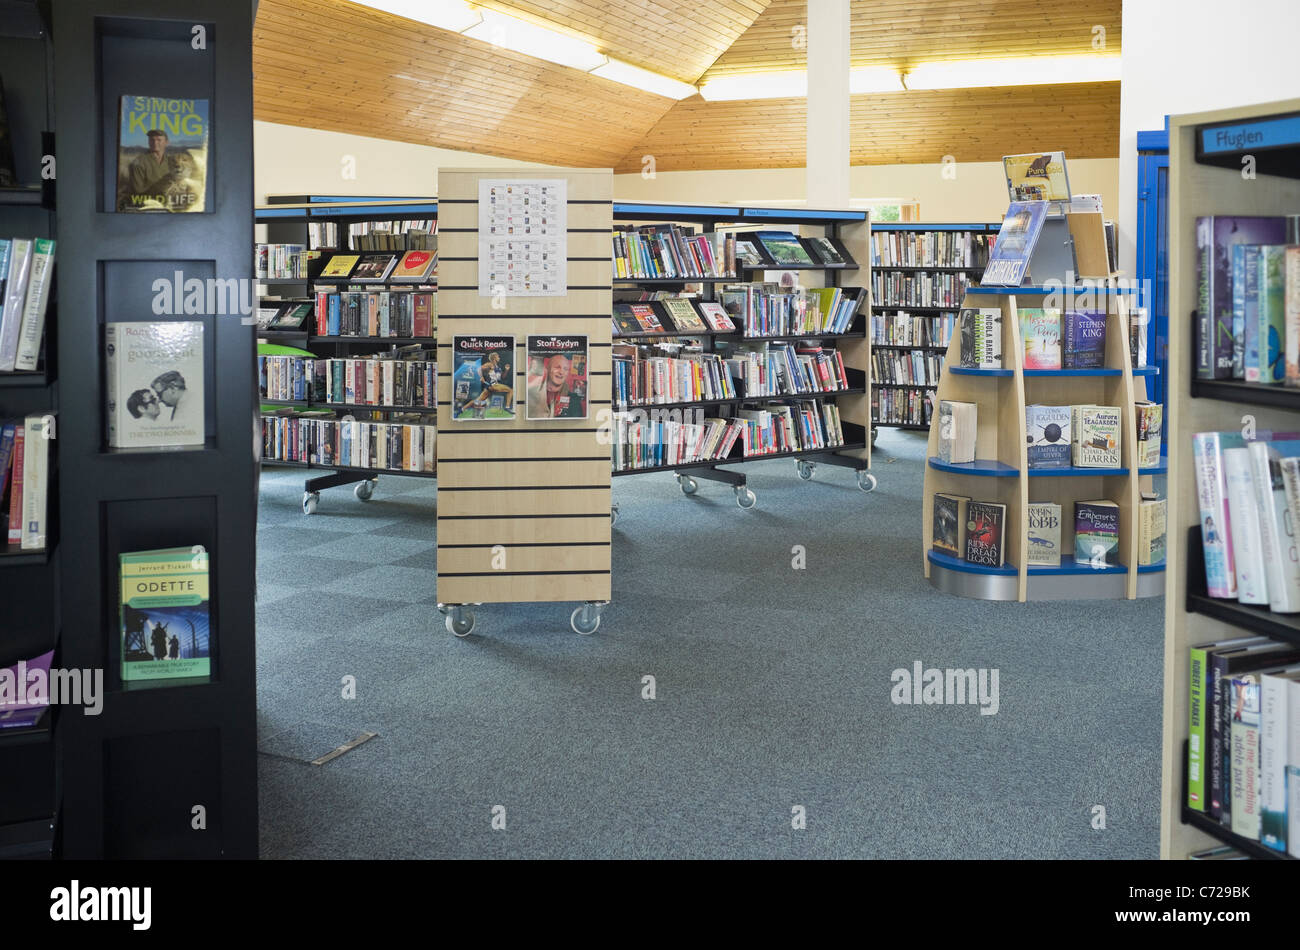 Inside a public library with books on book shelves. Wales, UK, Britain. - Stock Image